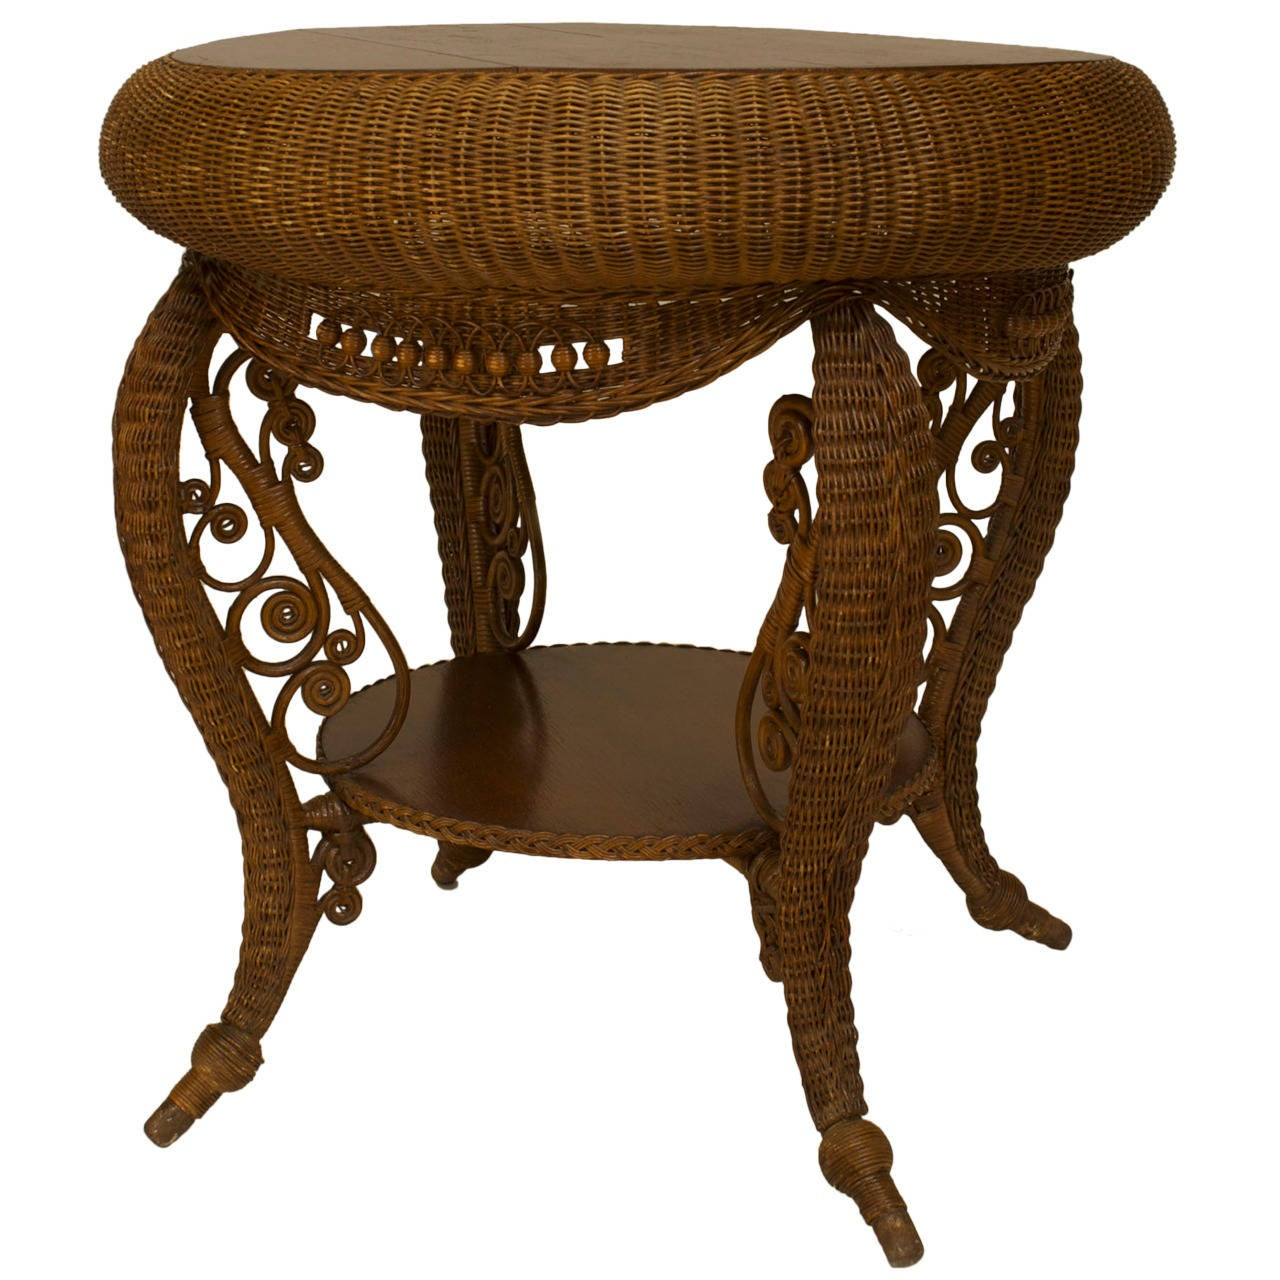 Beau Small 19th C. American Heywood Wakefield Oak And Wicker Table For Sale